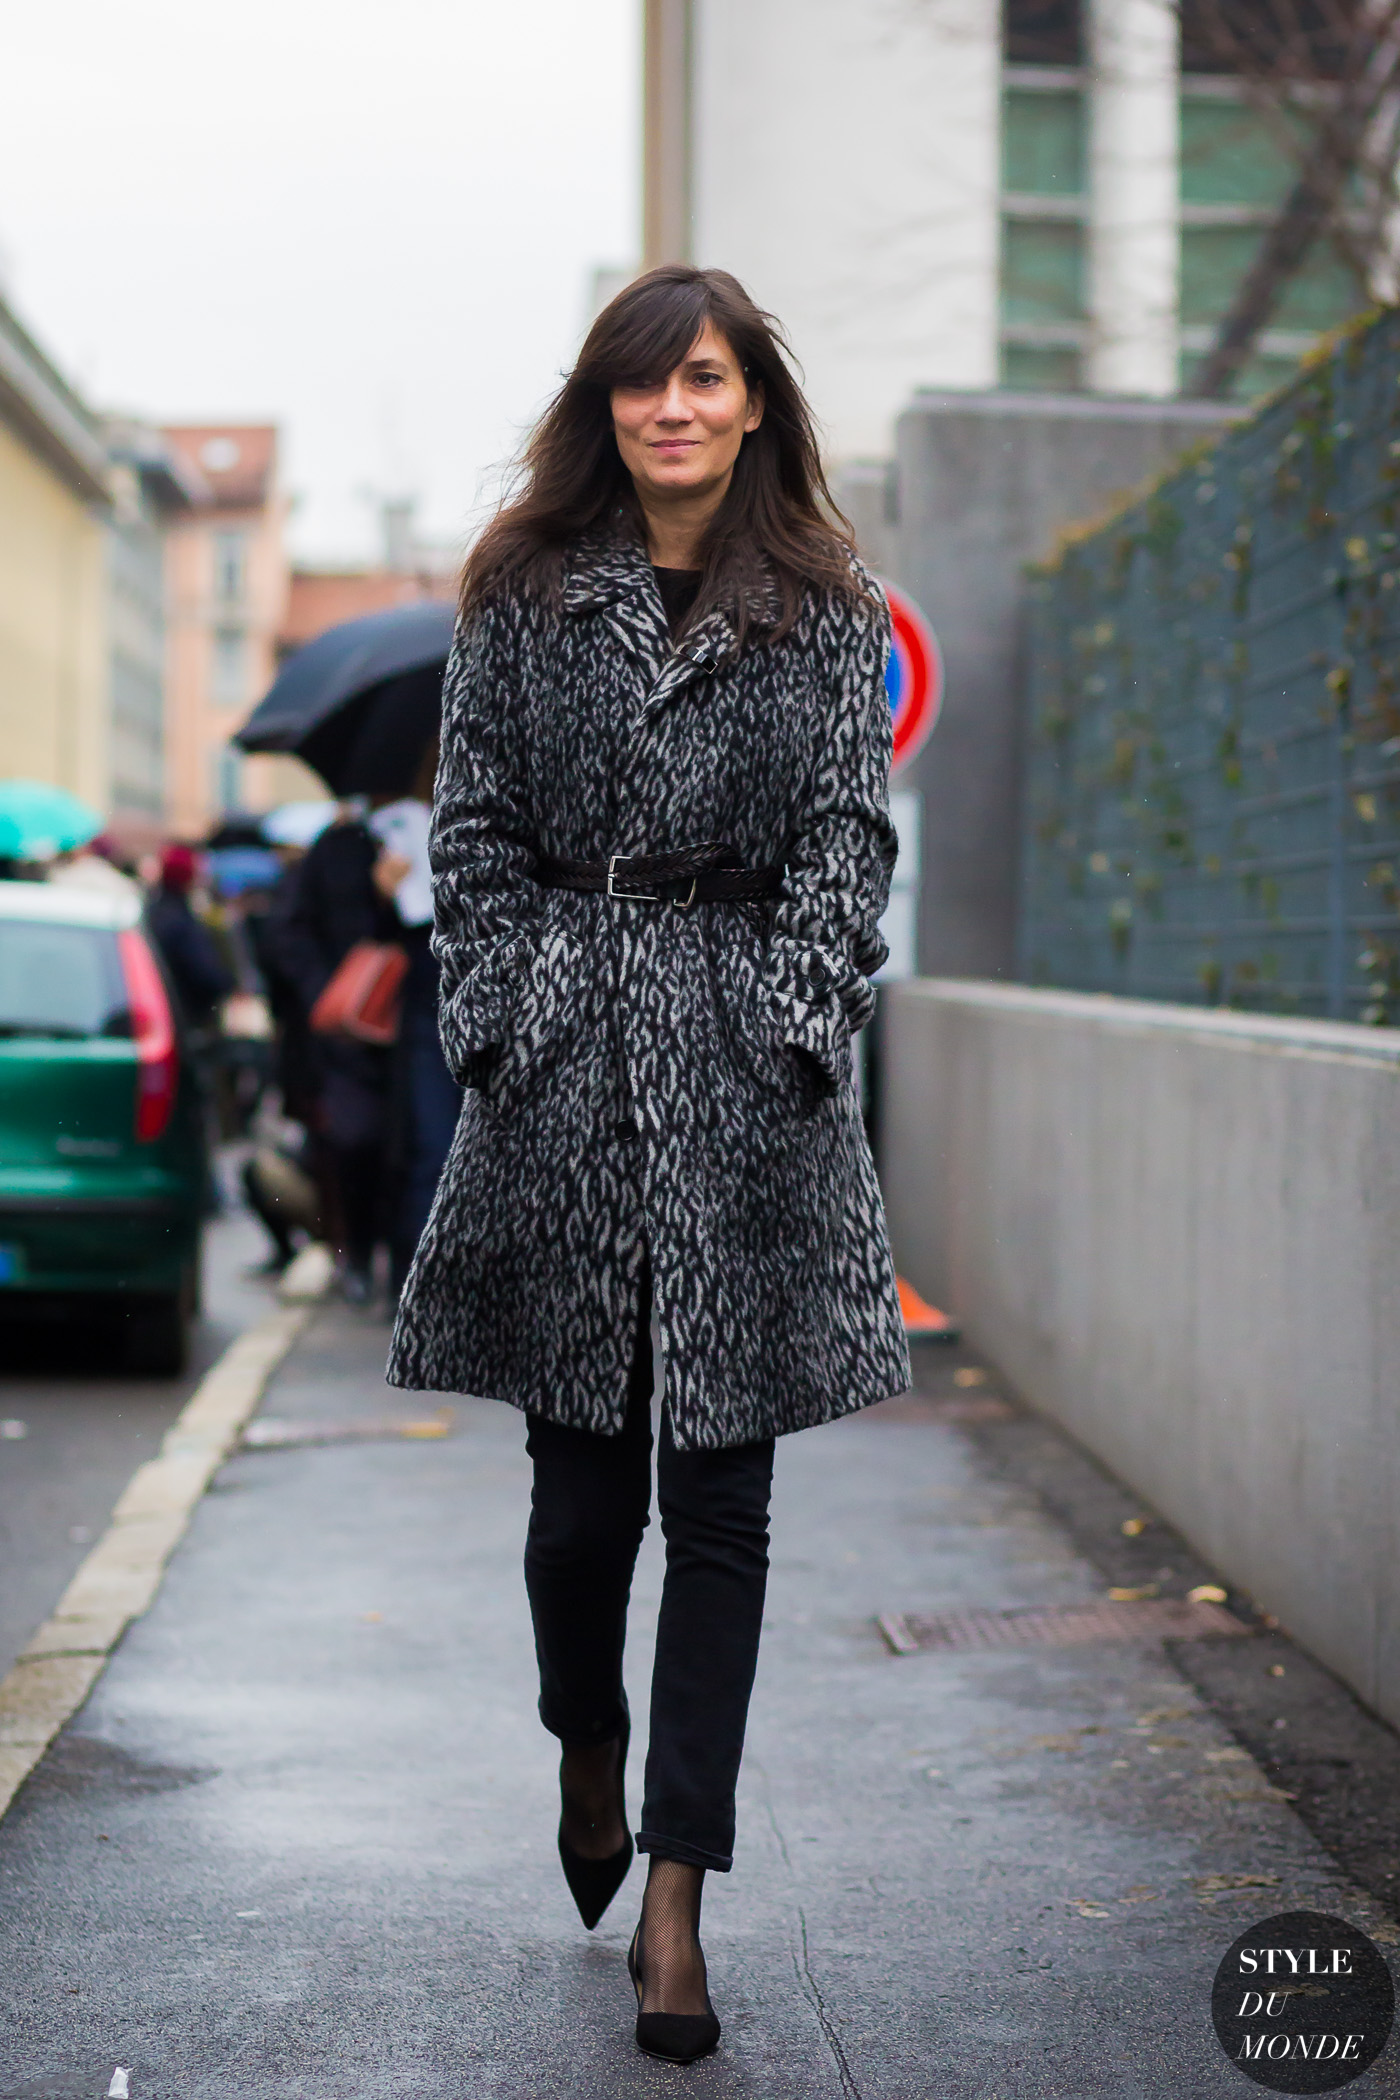 Emmanuelle Alt by STYLEDUMONDE Street Style Fashion Photography